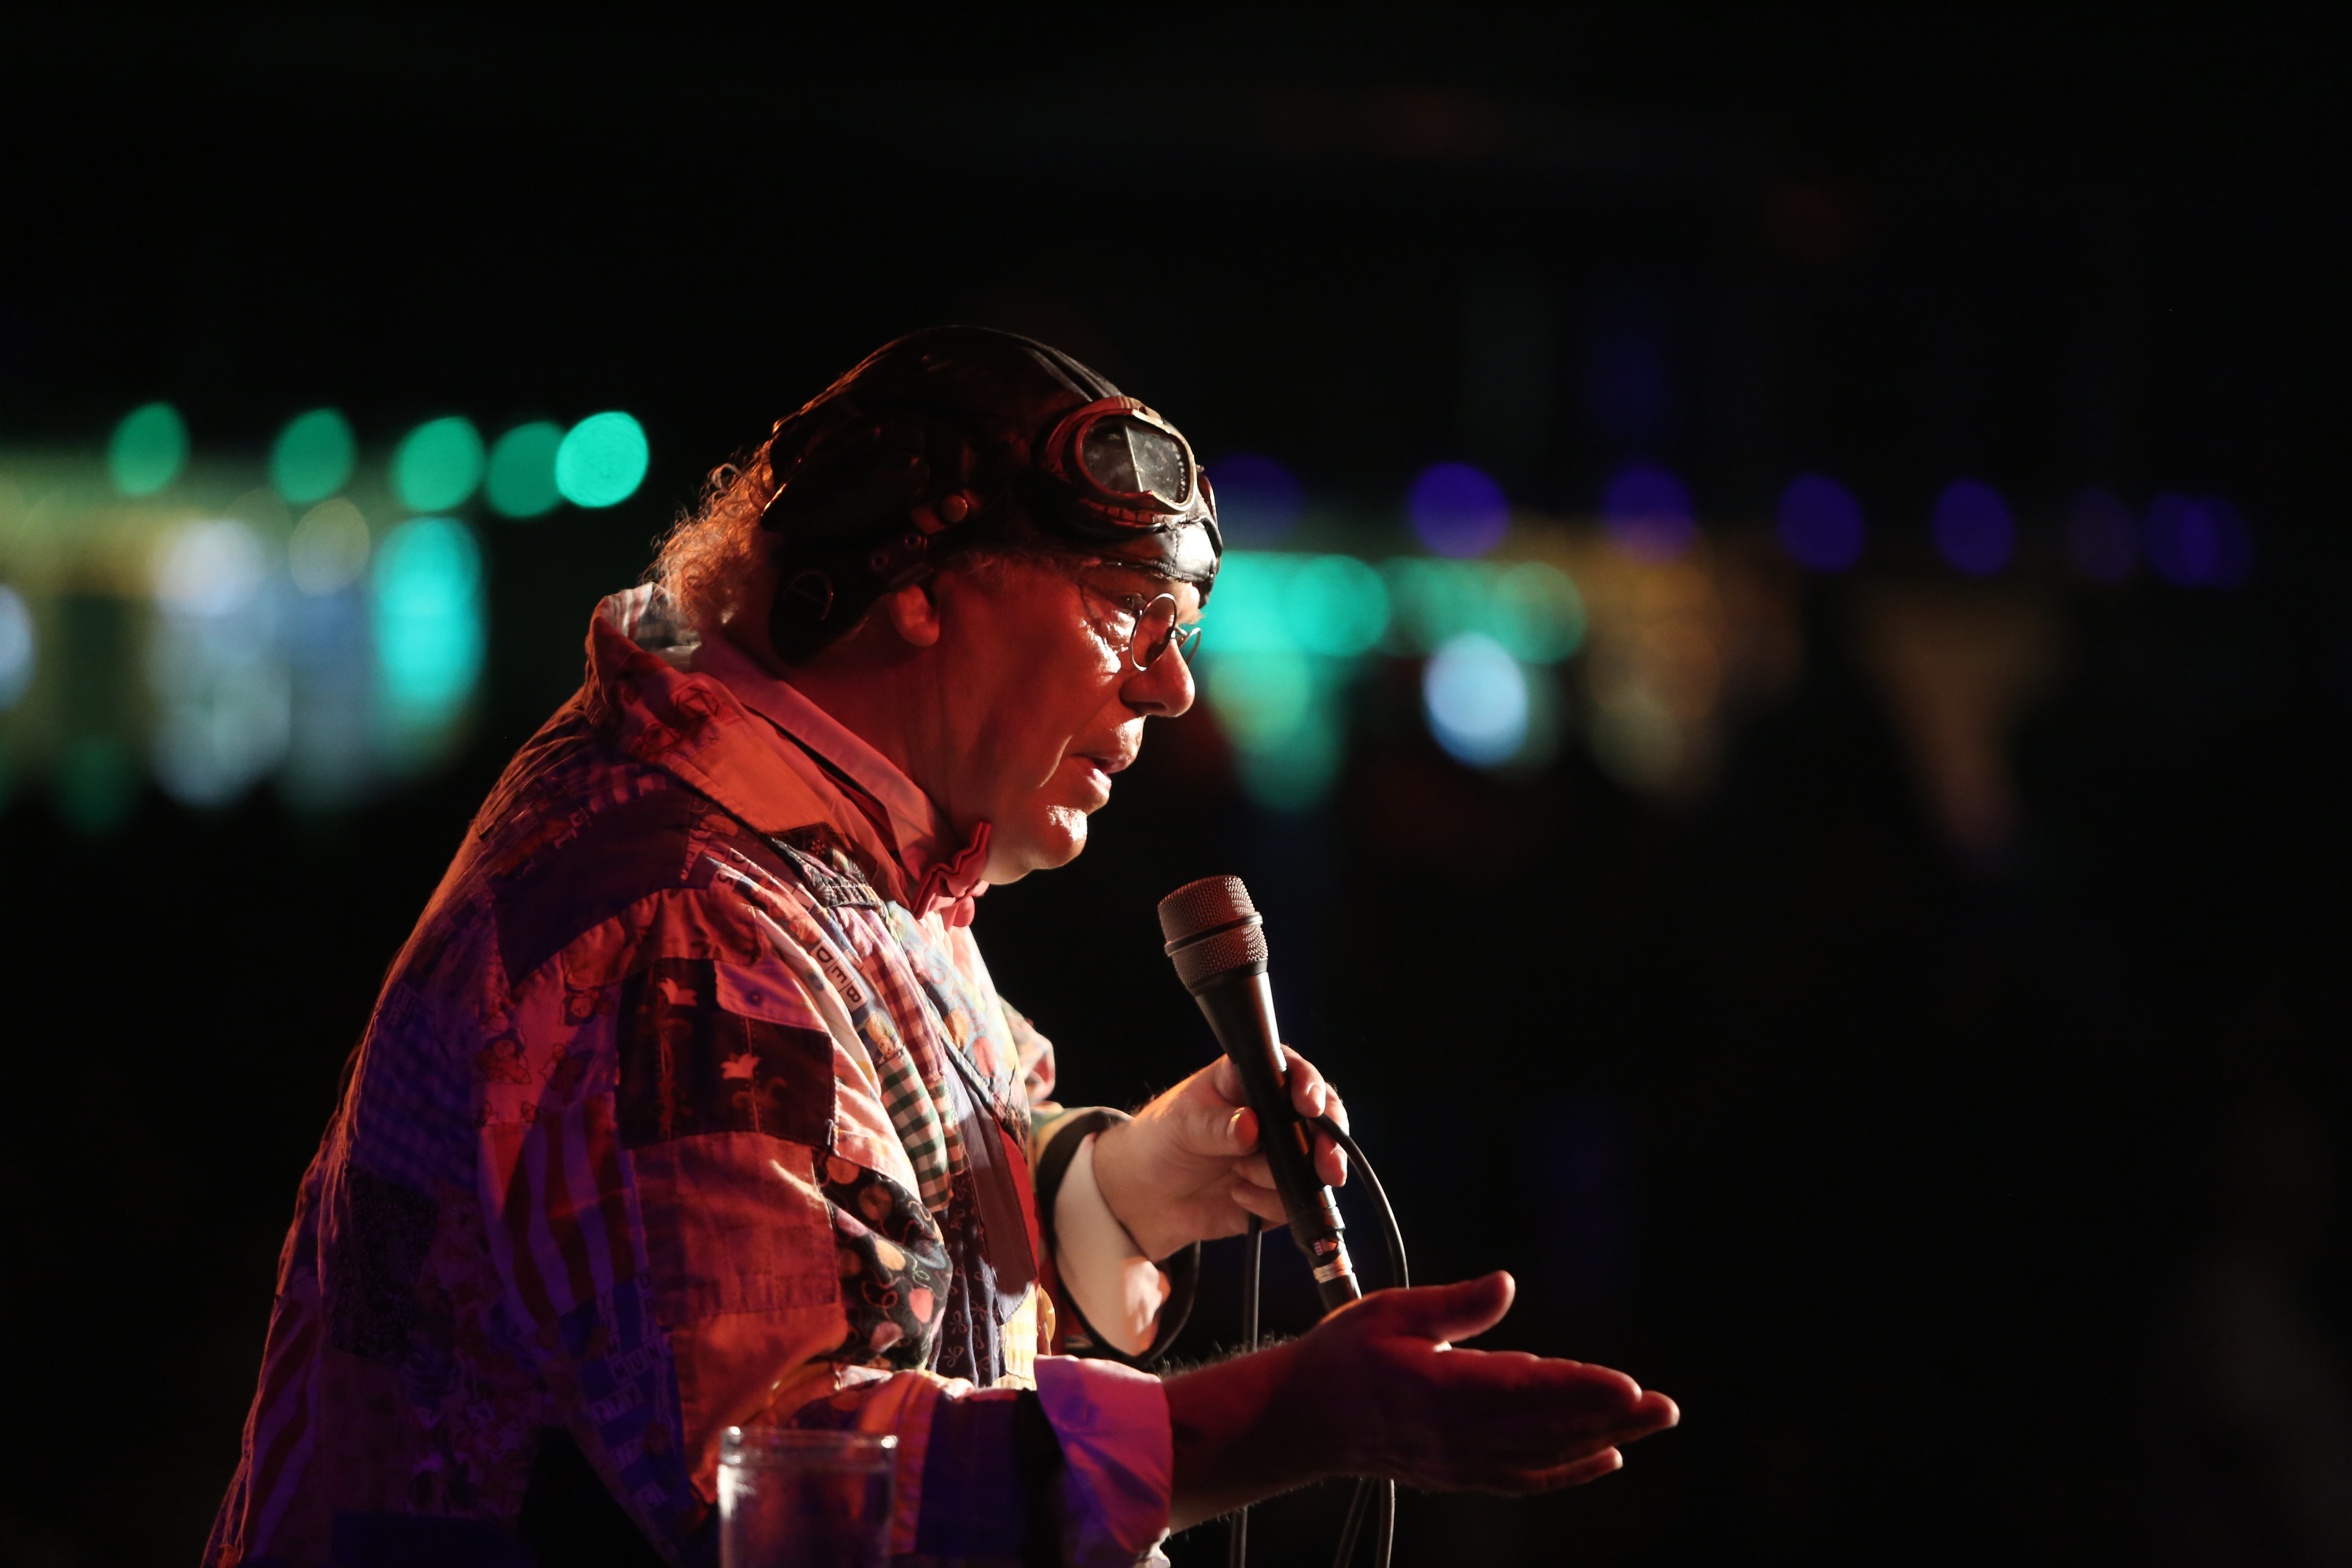 Useful piece Roy chubby brown shows